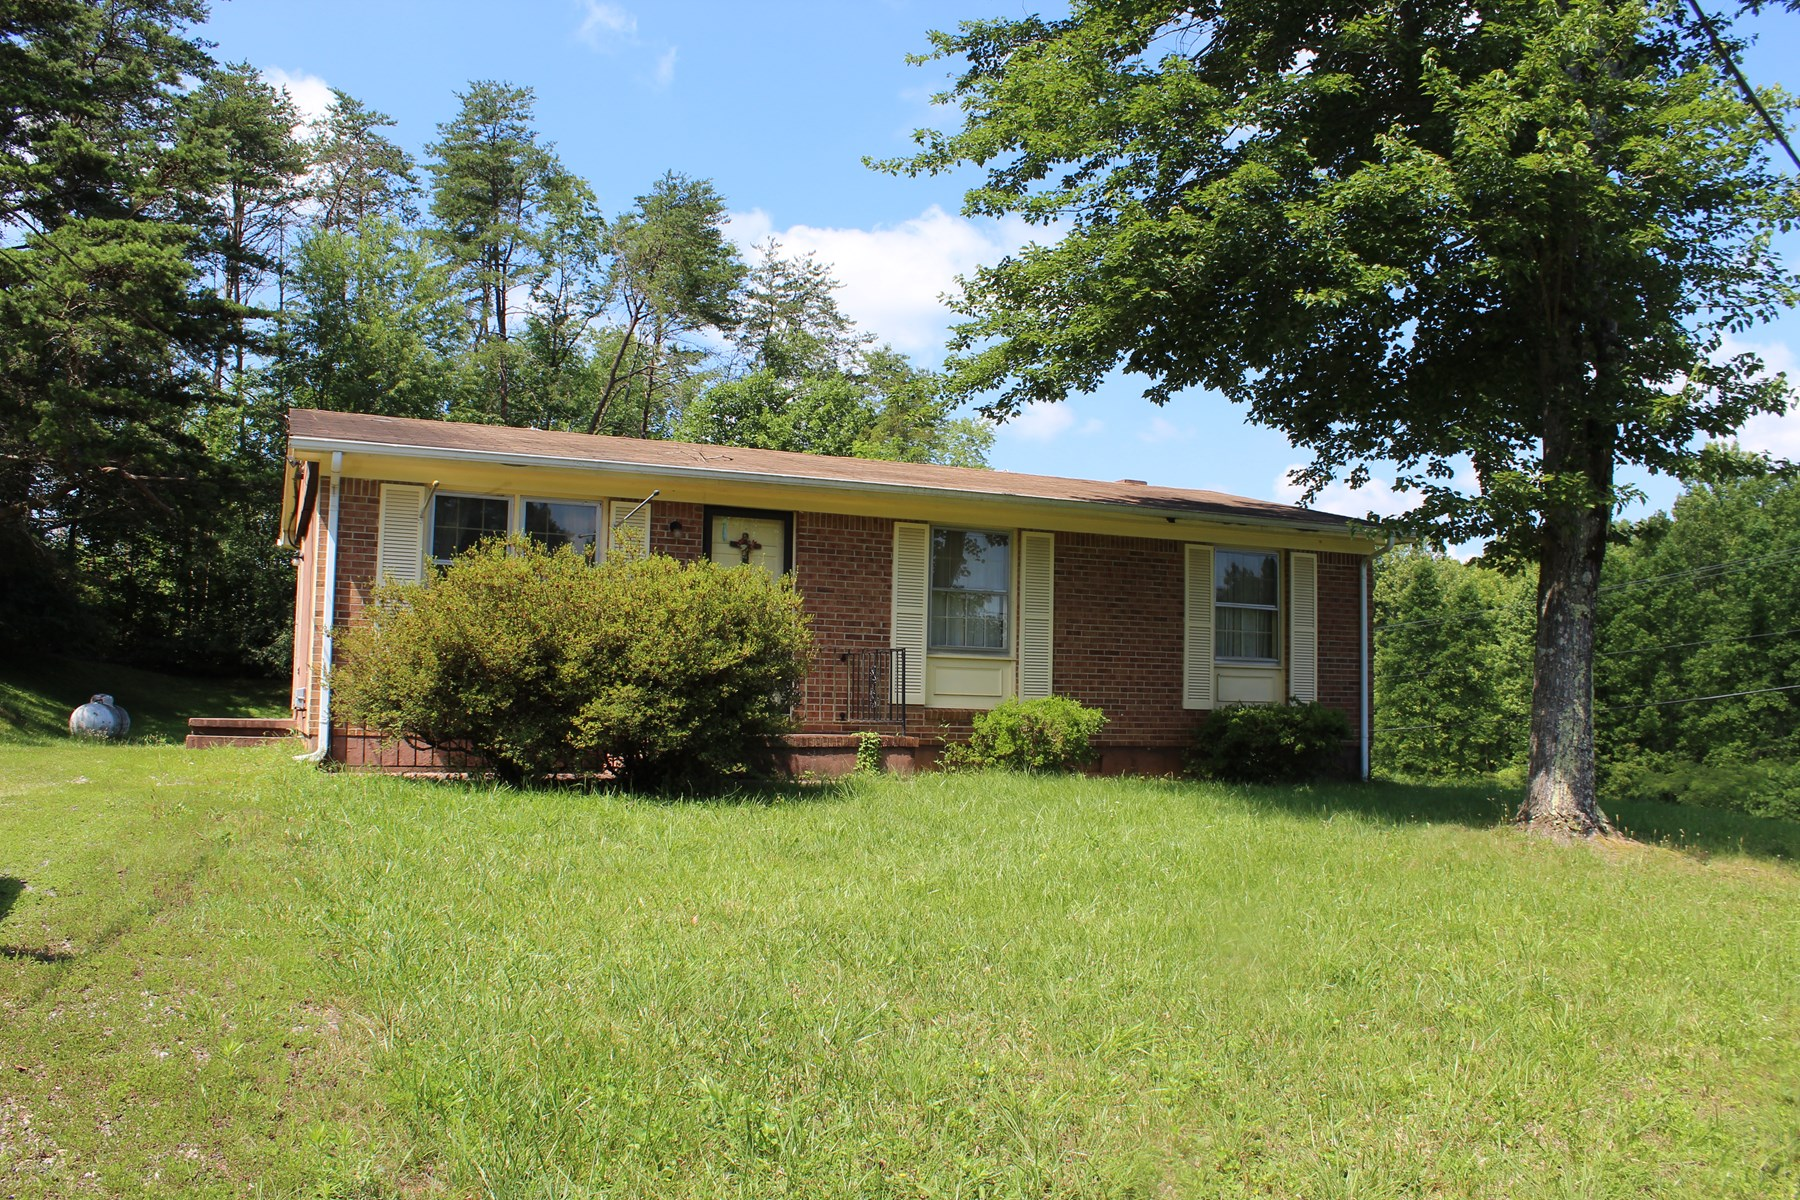 RANCH STYLE FIXER-UPPER HOME IN HENRY COUNTY, VA